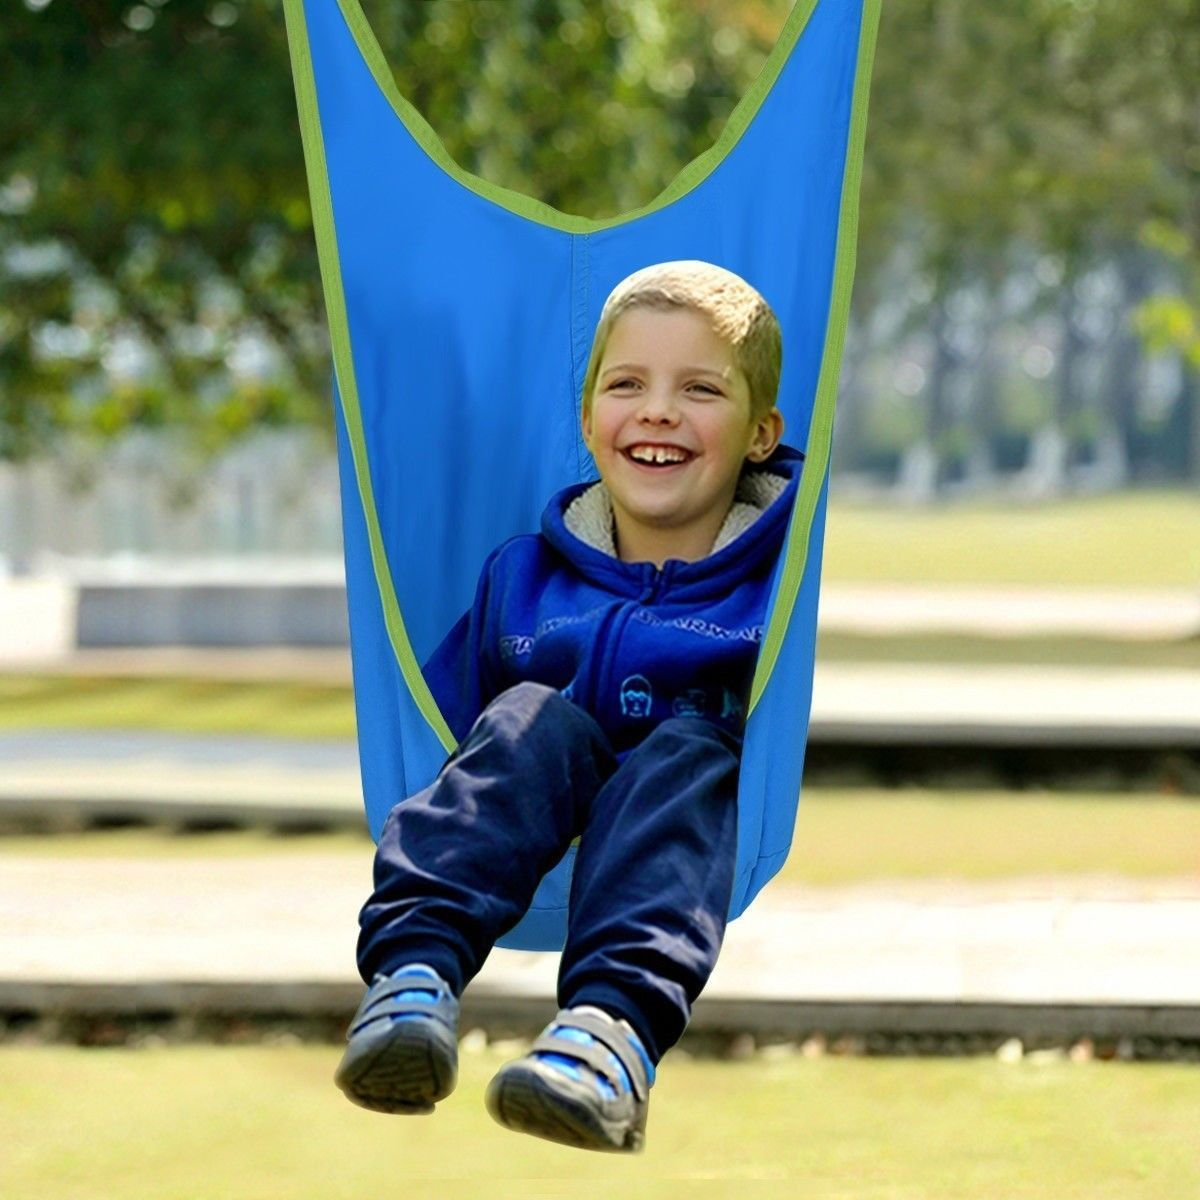 Hanging Seat For Kids Outdoor Swing Pod Children Hammock Chair With Straps Blue